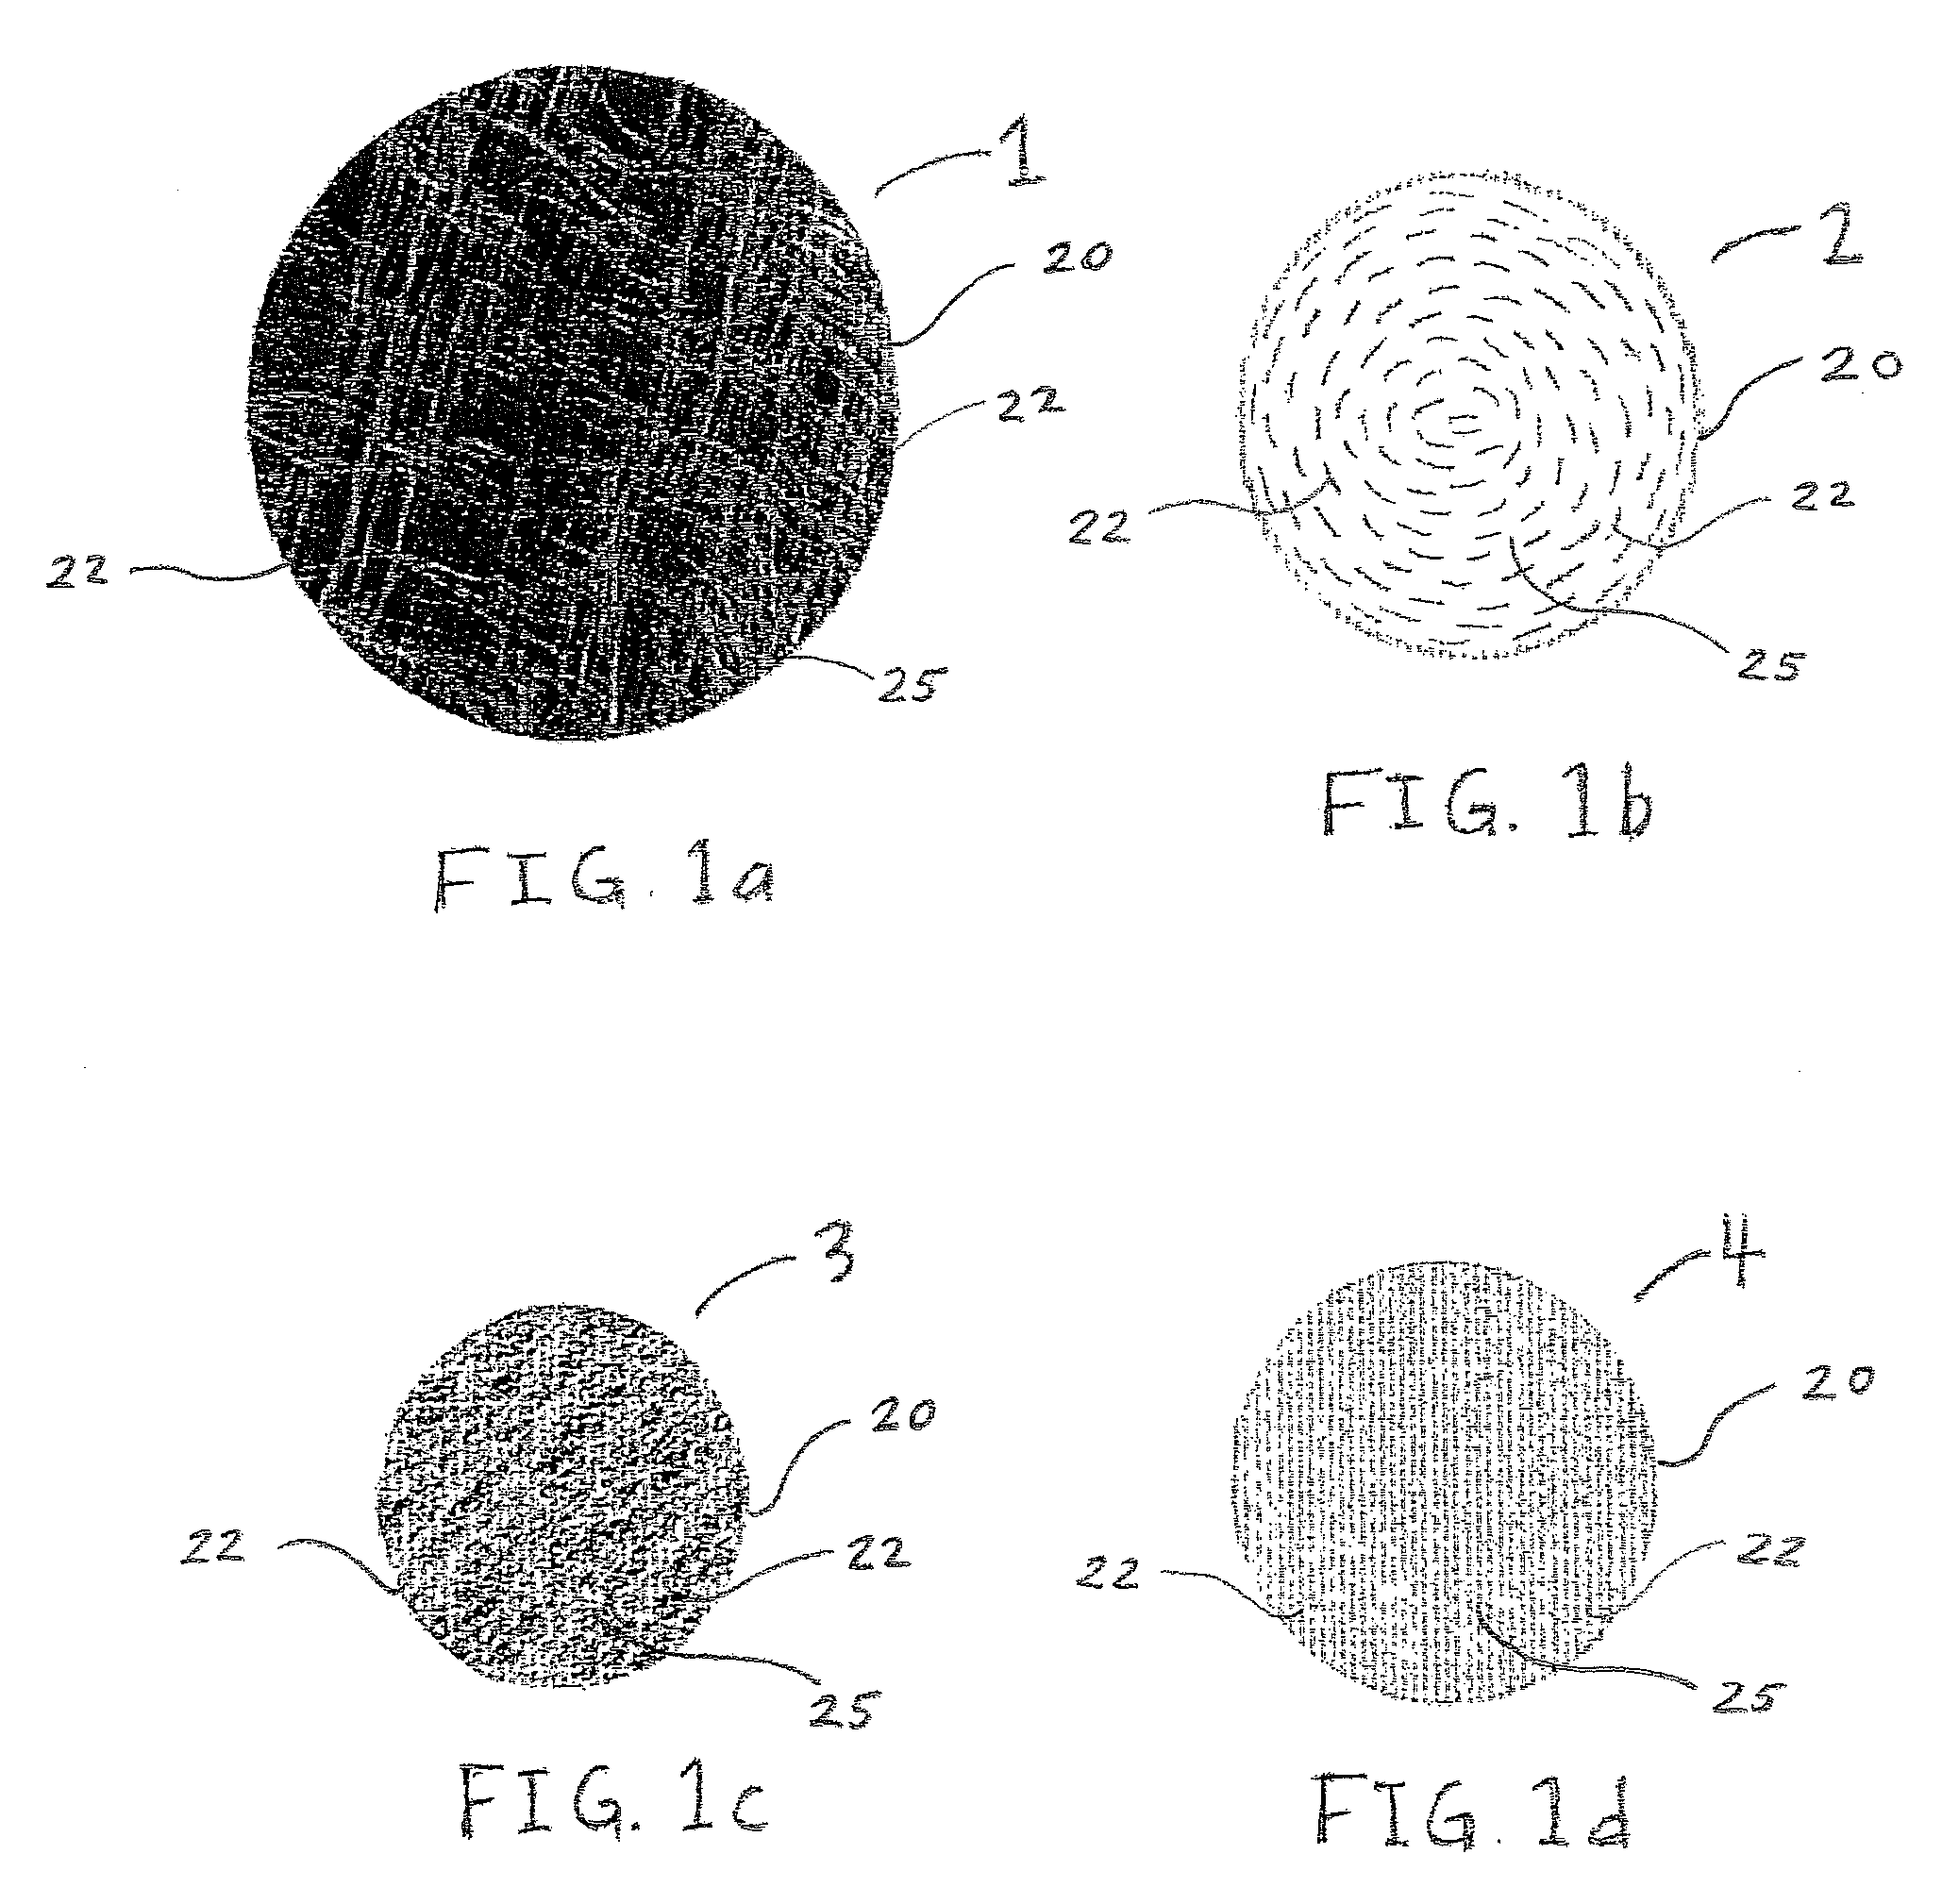 solid glass balls decorative.htm us9295882b2 golf ball having a translucent layer containing  golf ball having a translucent